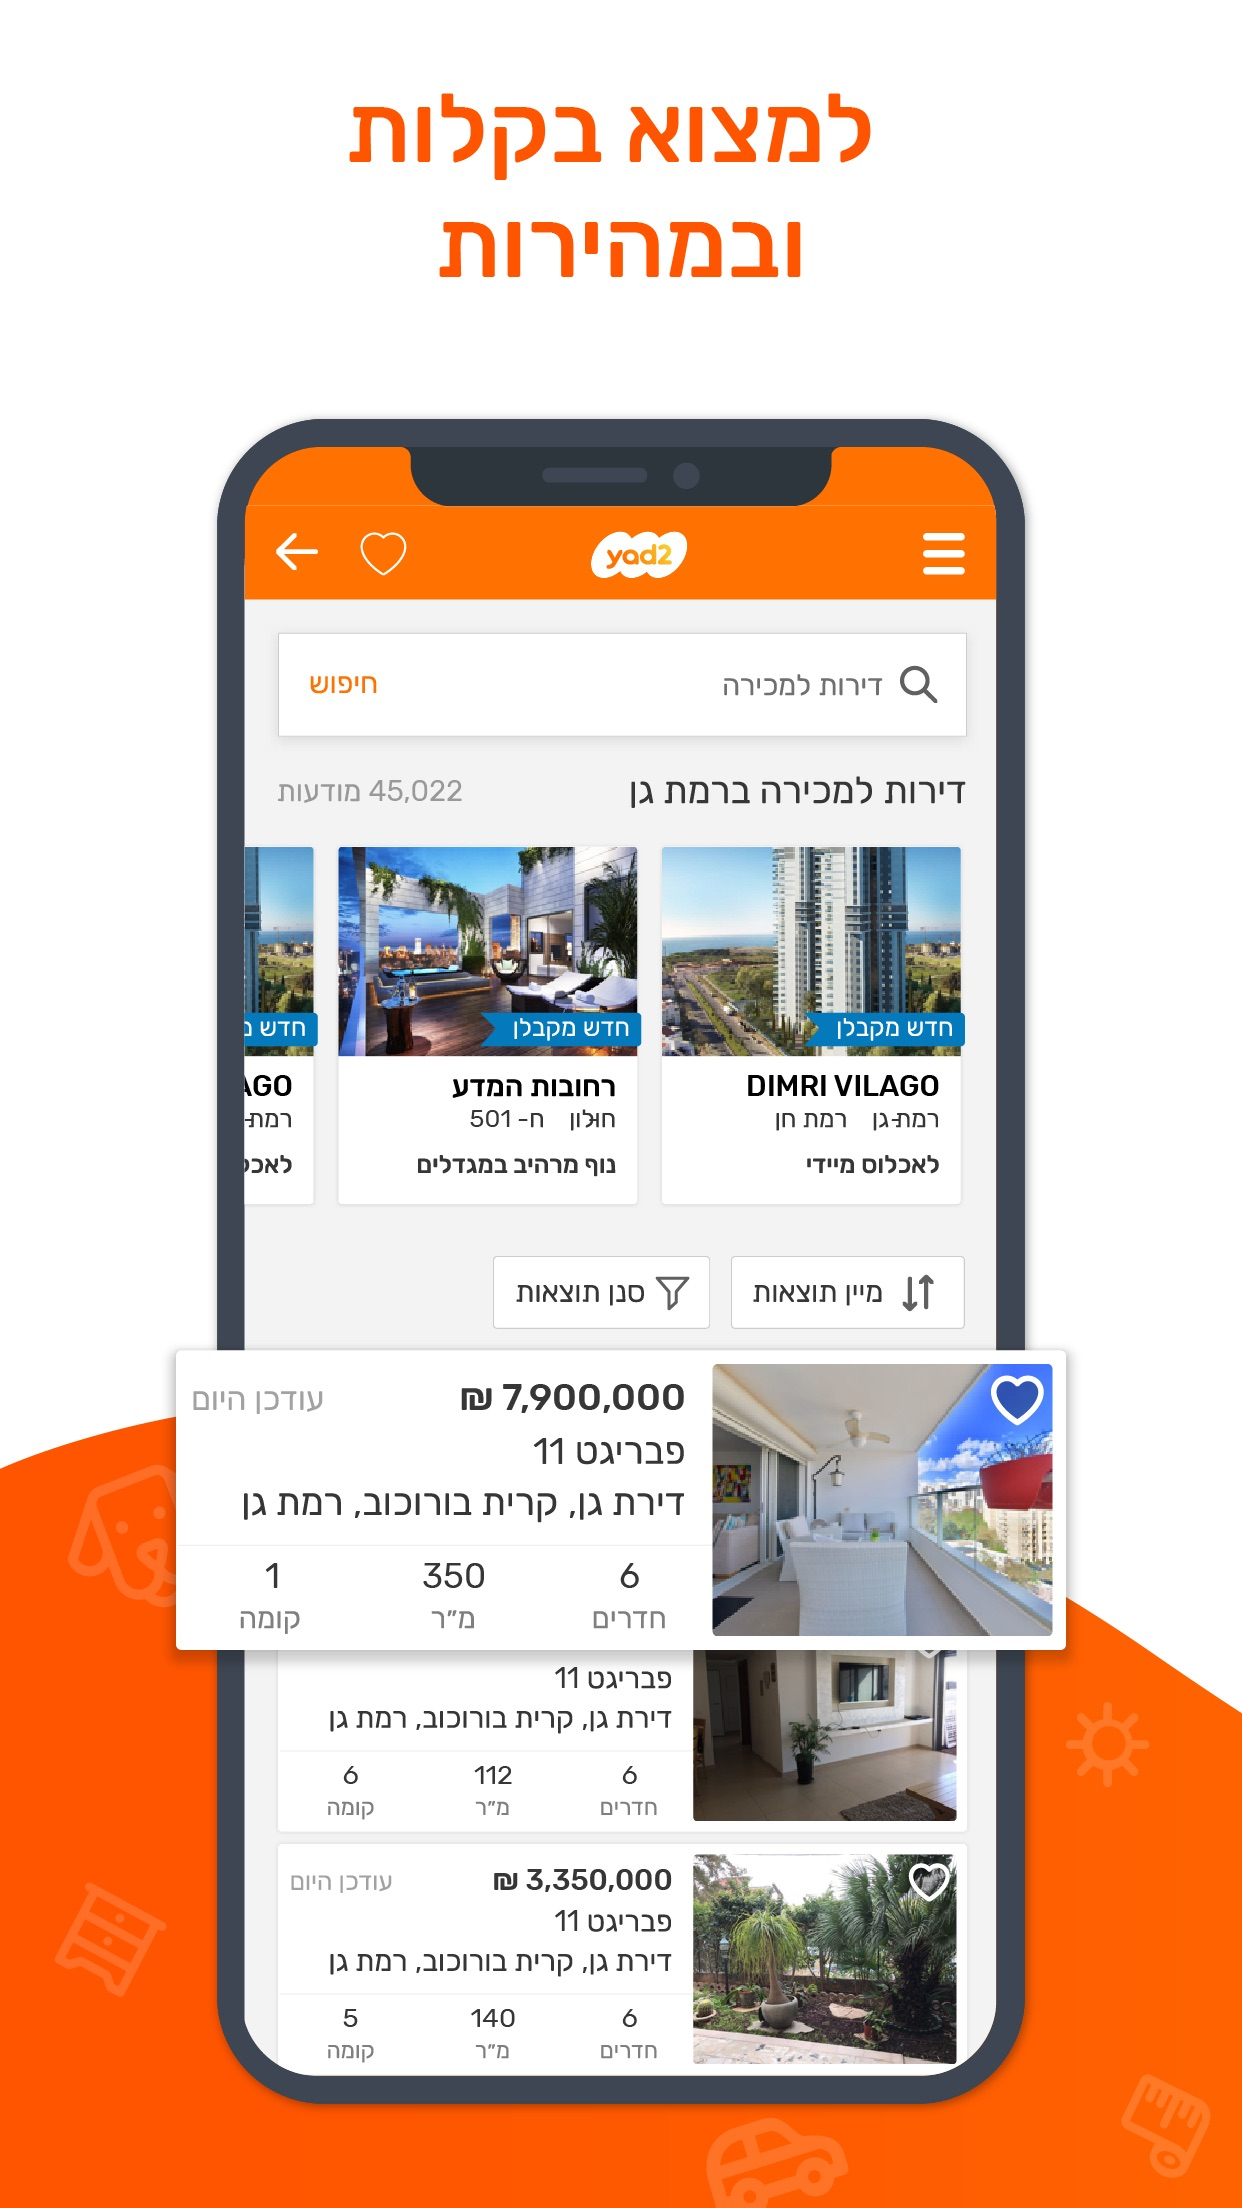 yad2 - יד2 Screenshot